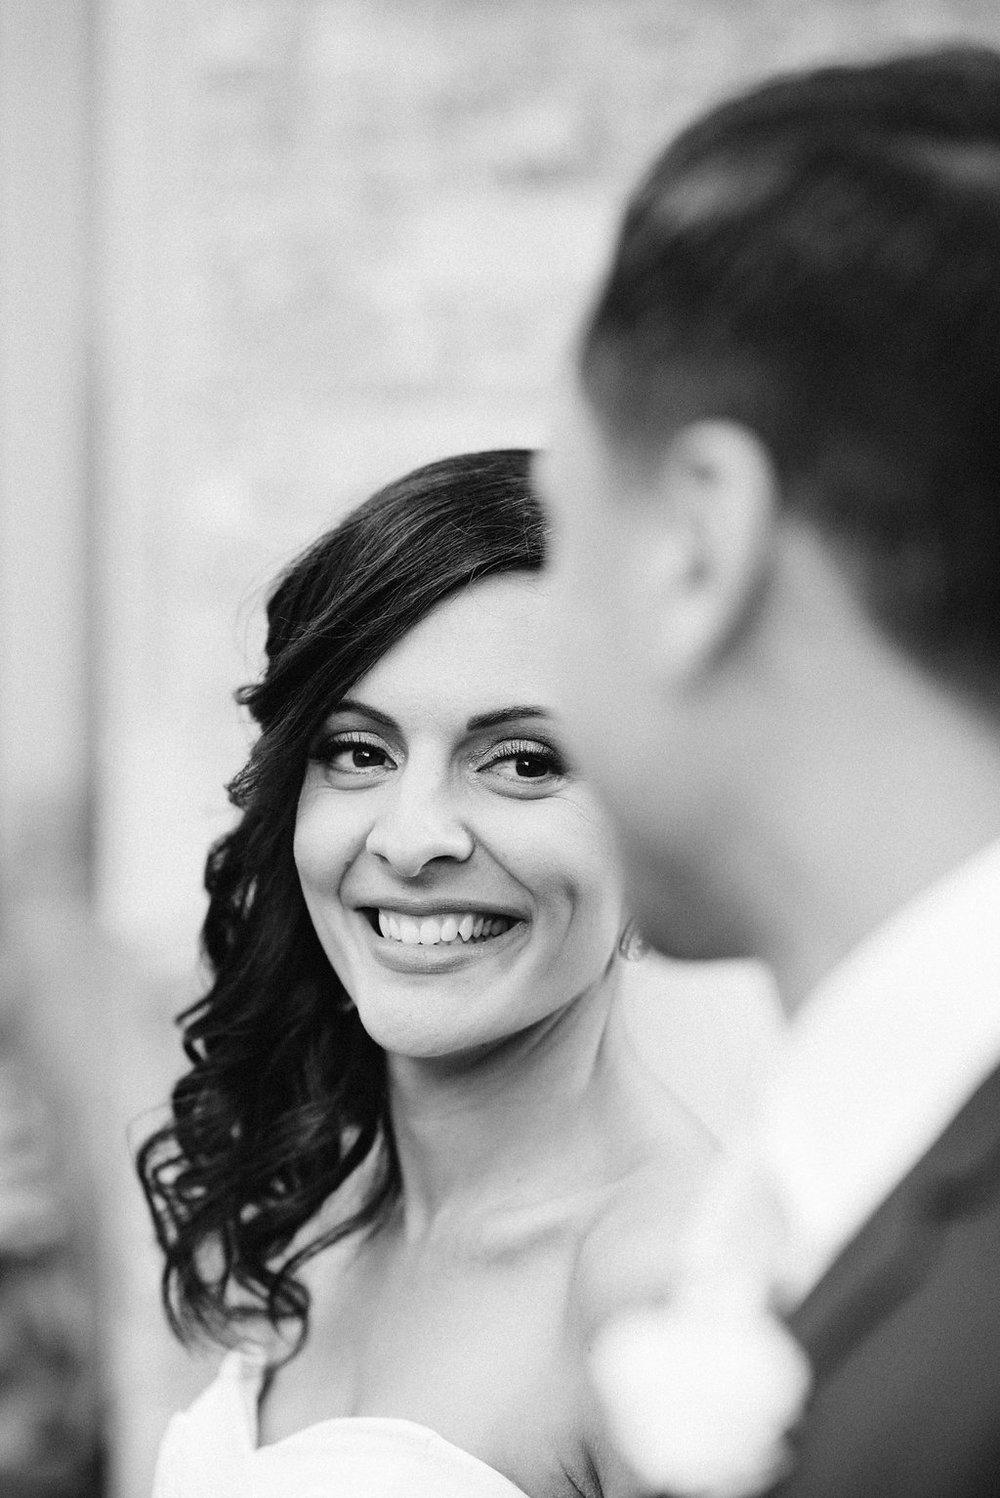 Rachel_Takes_Pictures_Wedding_Photography_Sydney_11.jpg